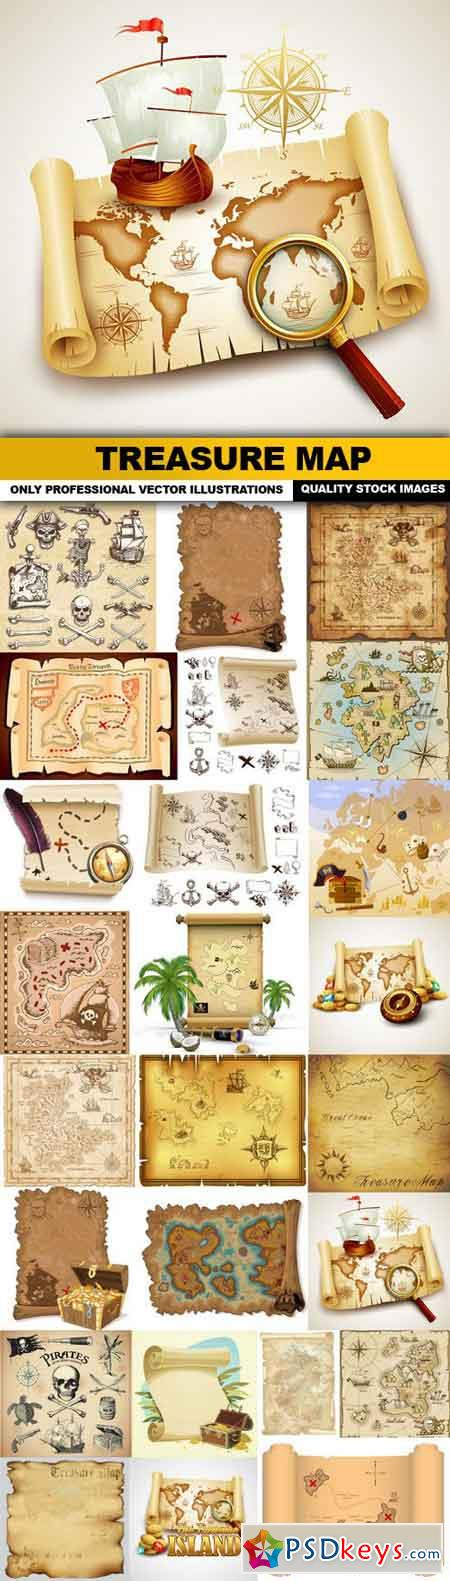 Map page 6 free download photoshop vector stock image via treasure map 25 vector gumiabroncs Gallery